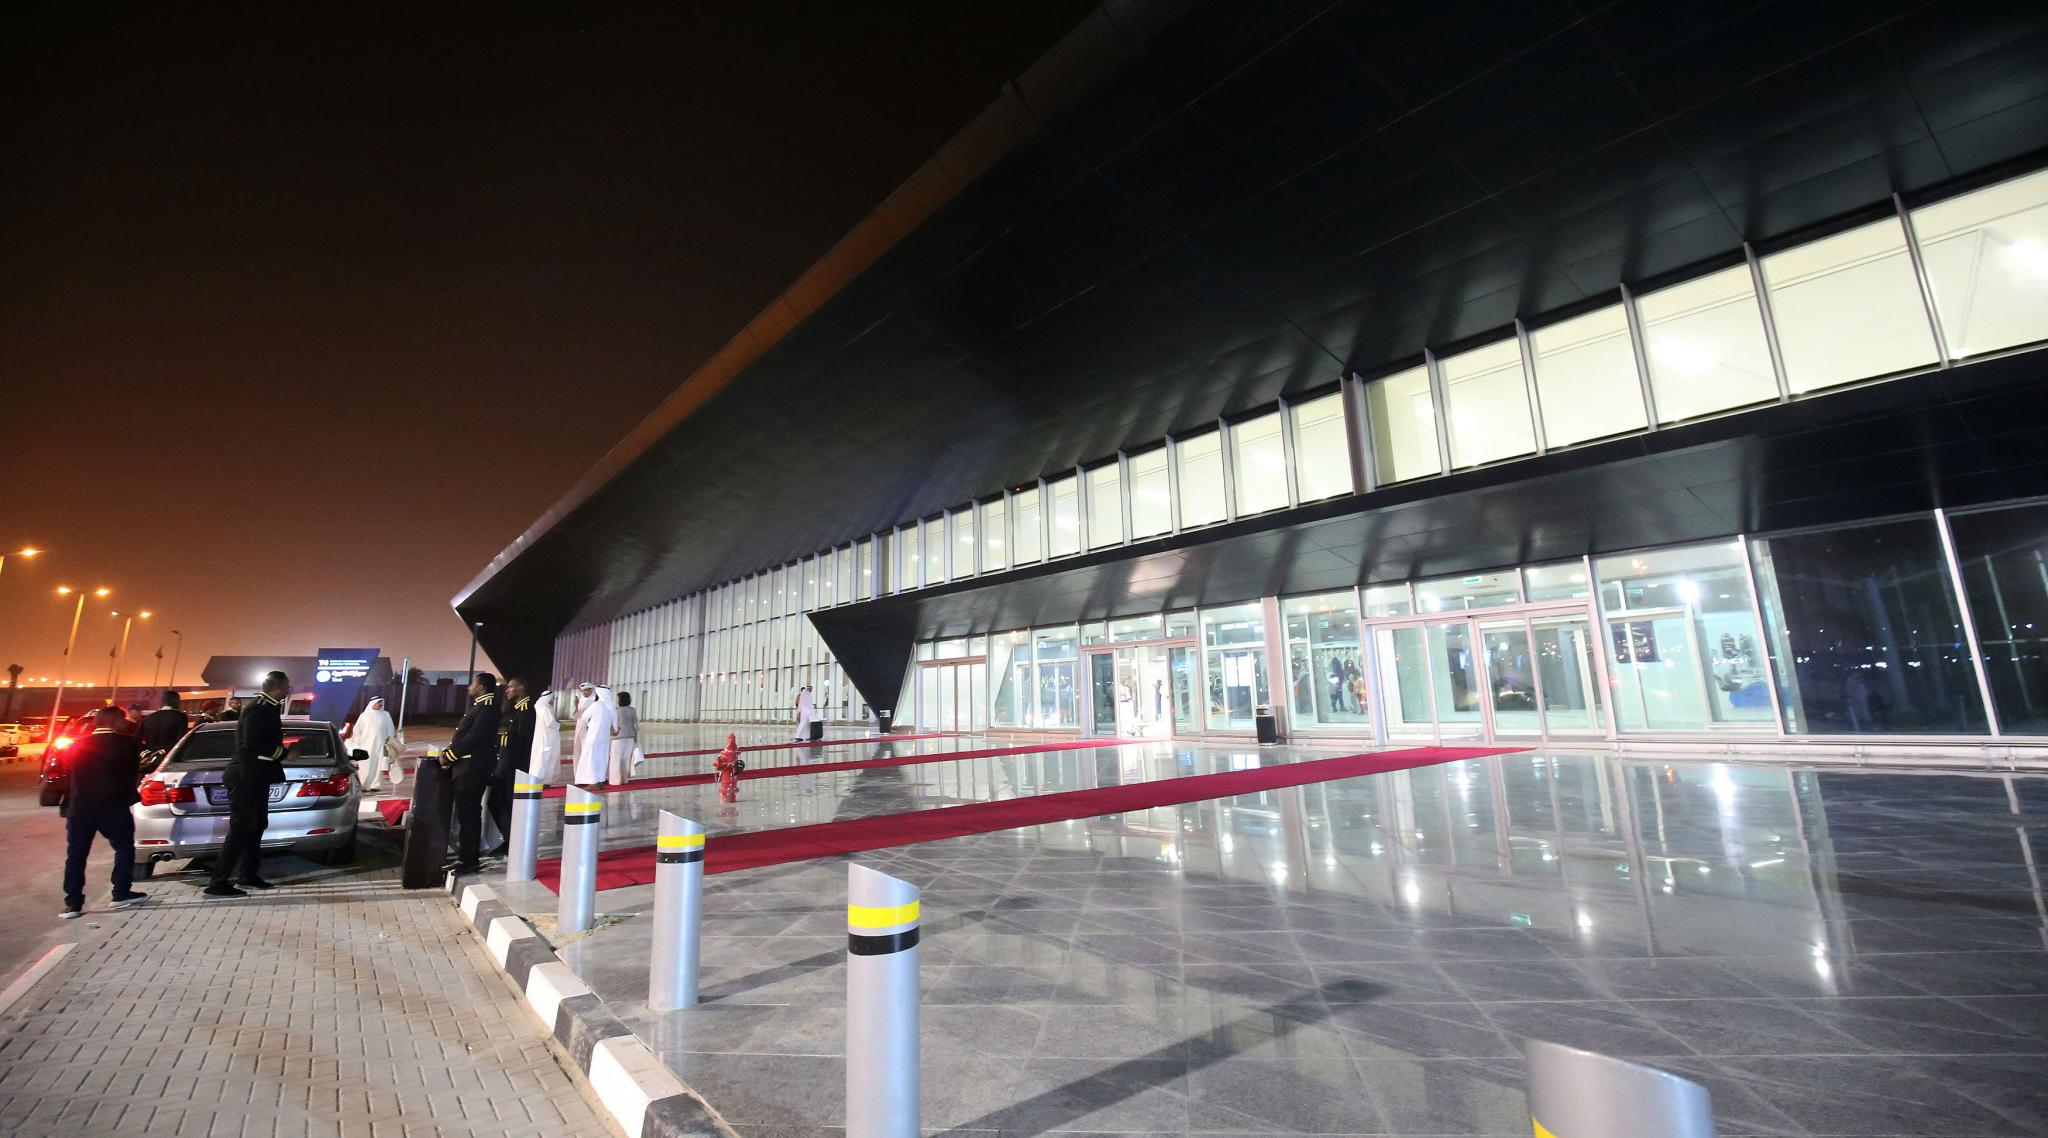 Kuwait: Workers Strike at International Airport for Better Working Conditions